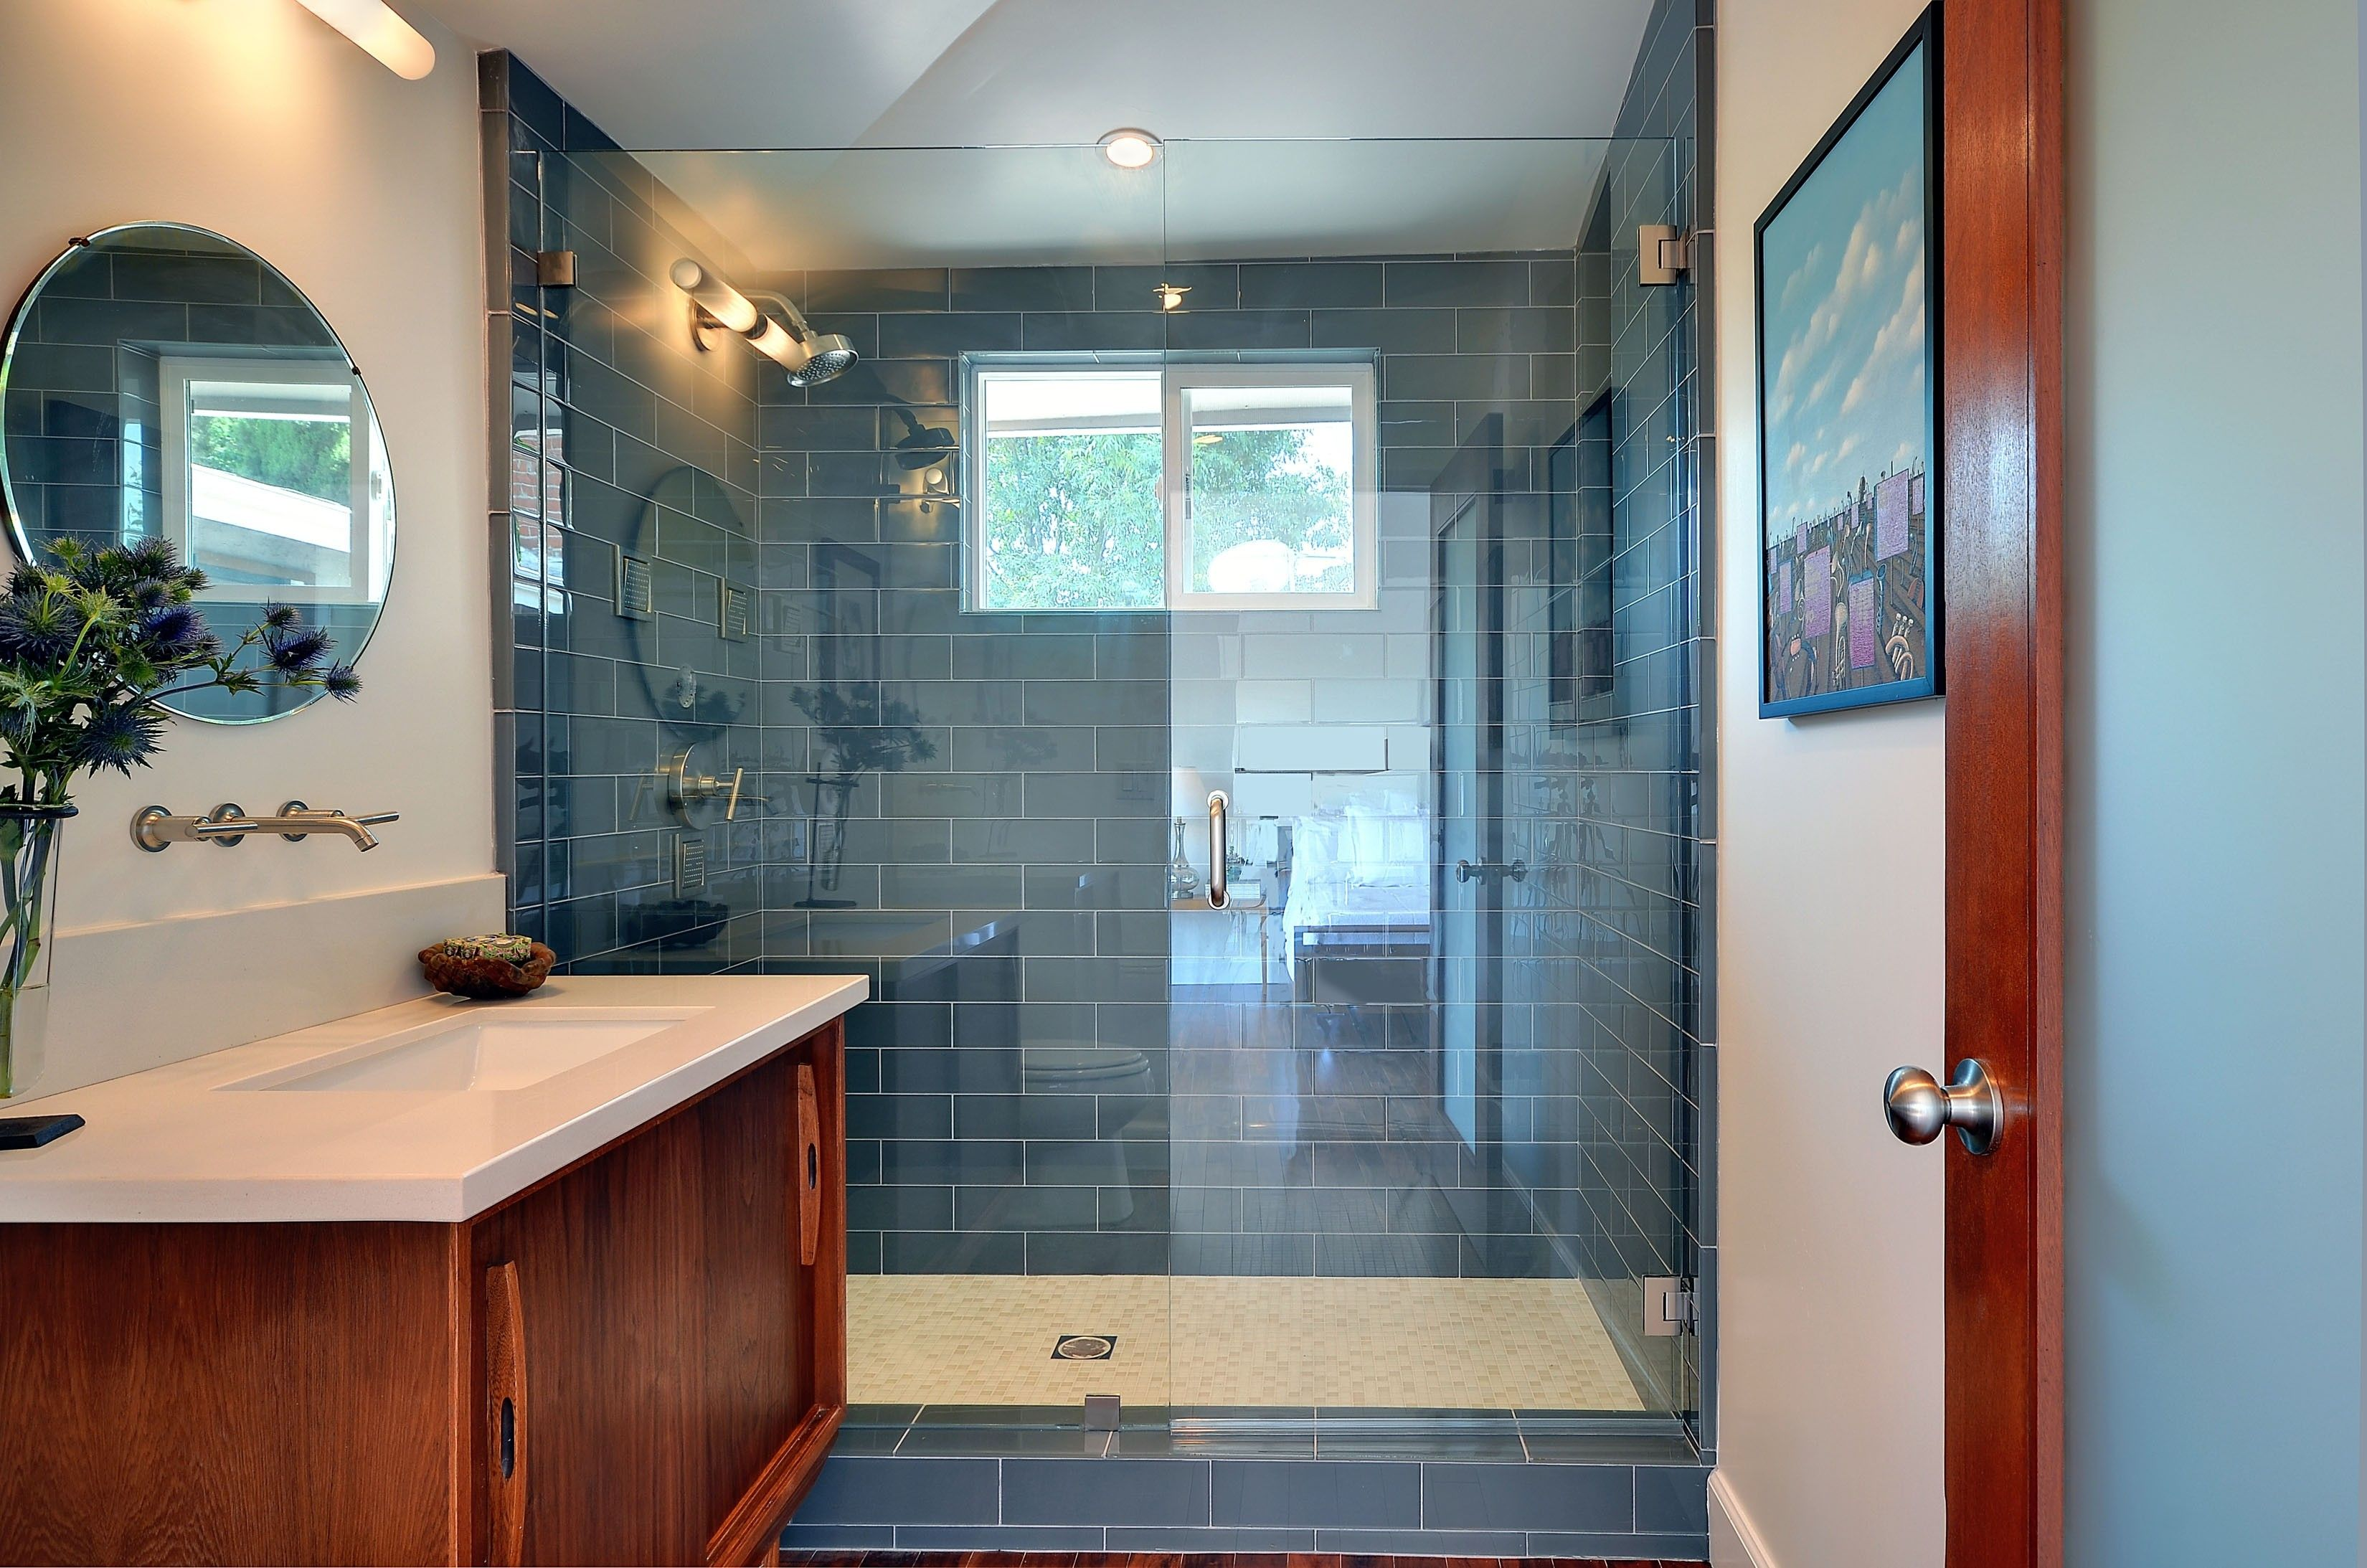 Lush Storm 4x12 Dark Gray Subway Tile by Modwalls Shower